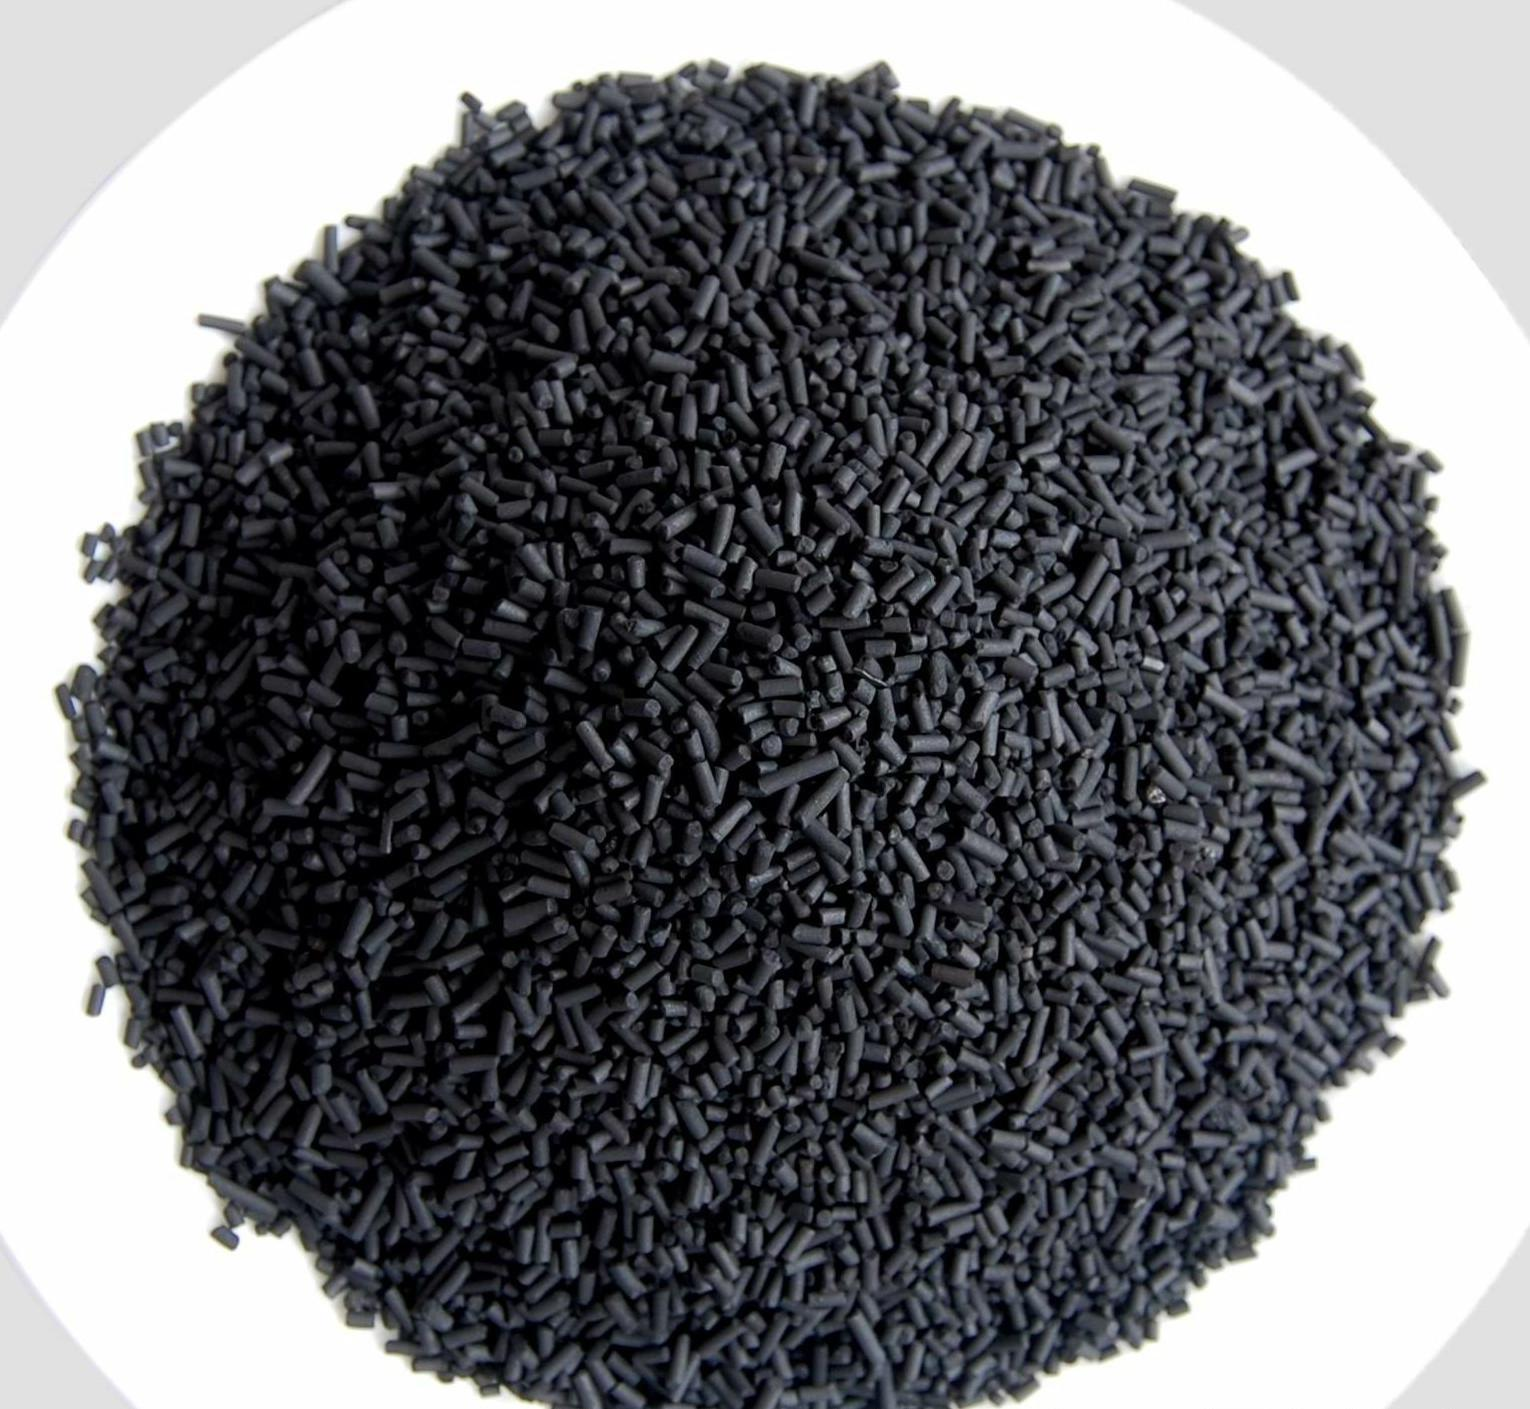 Solvent recovery pelleted activated carbon